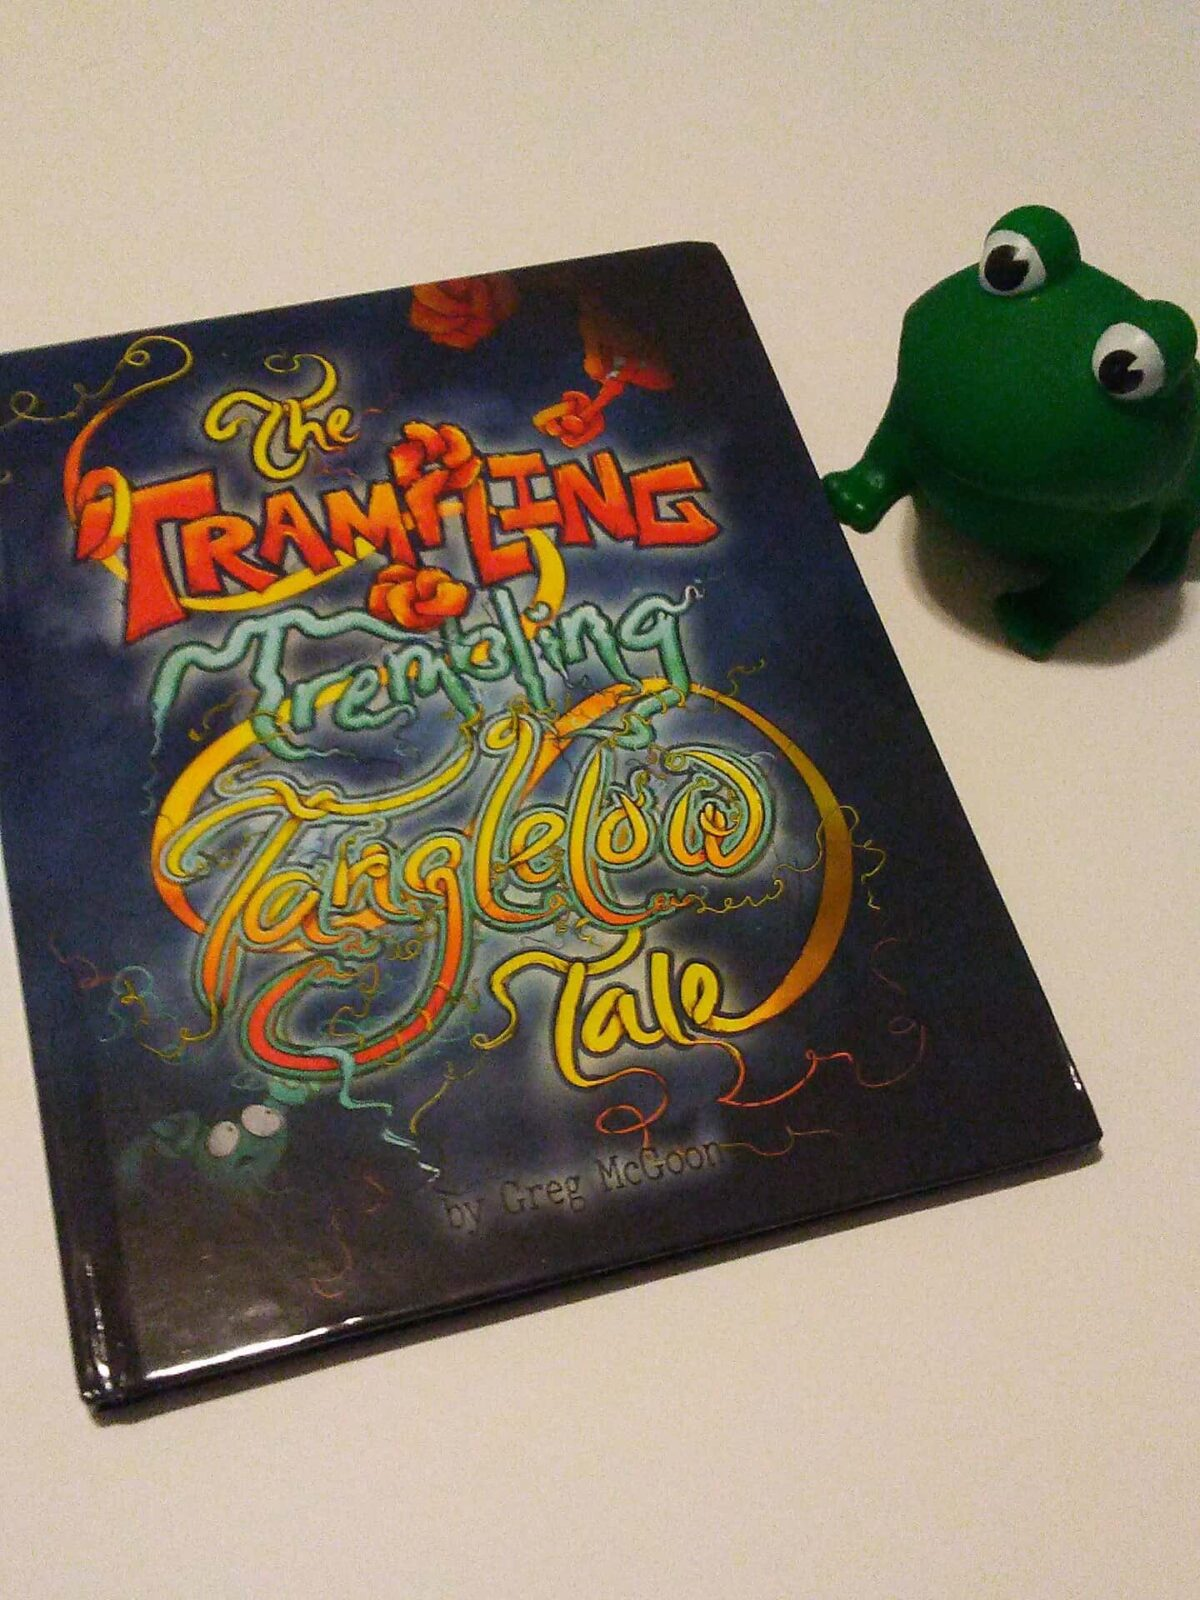 The Tanglelows Two: Trampling & Trembling